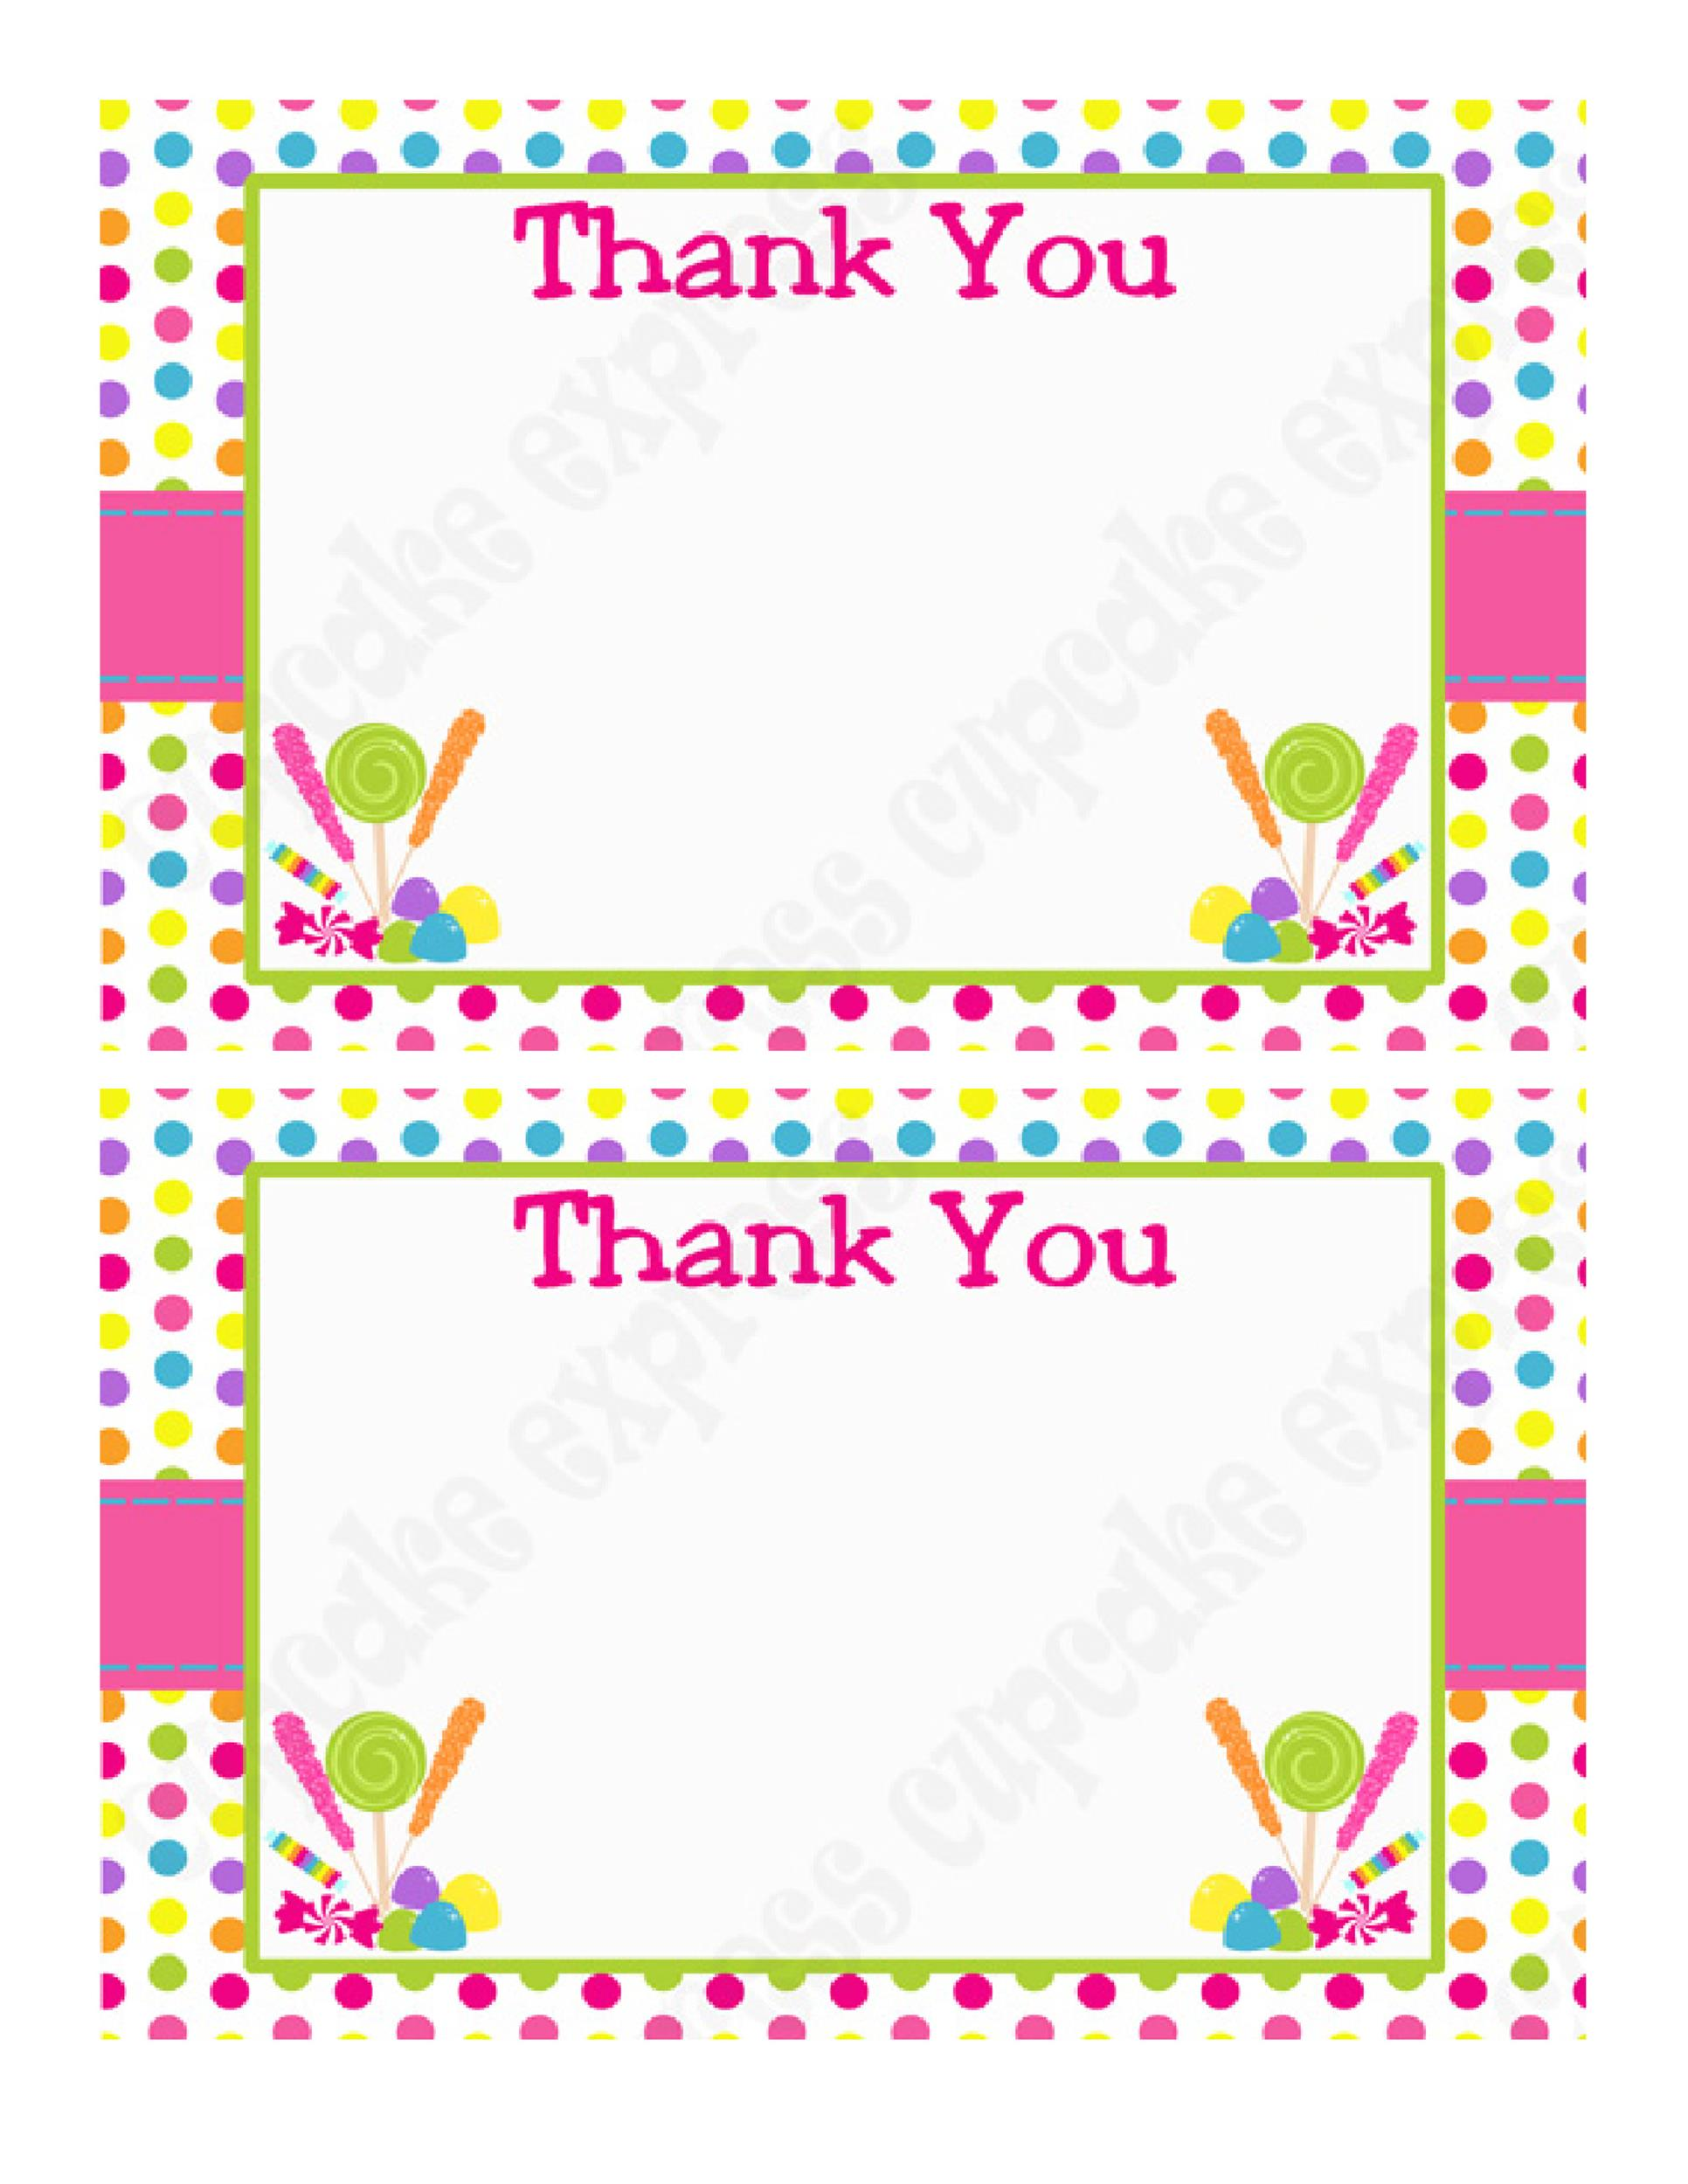 30+ Free Printable Thank You Card Templates (Wedding, Graduation ...